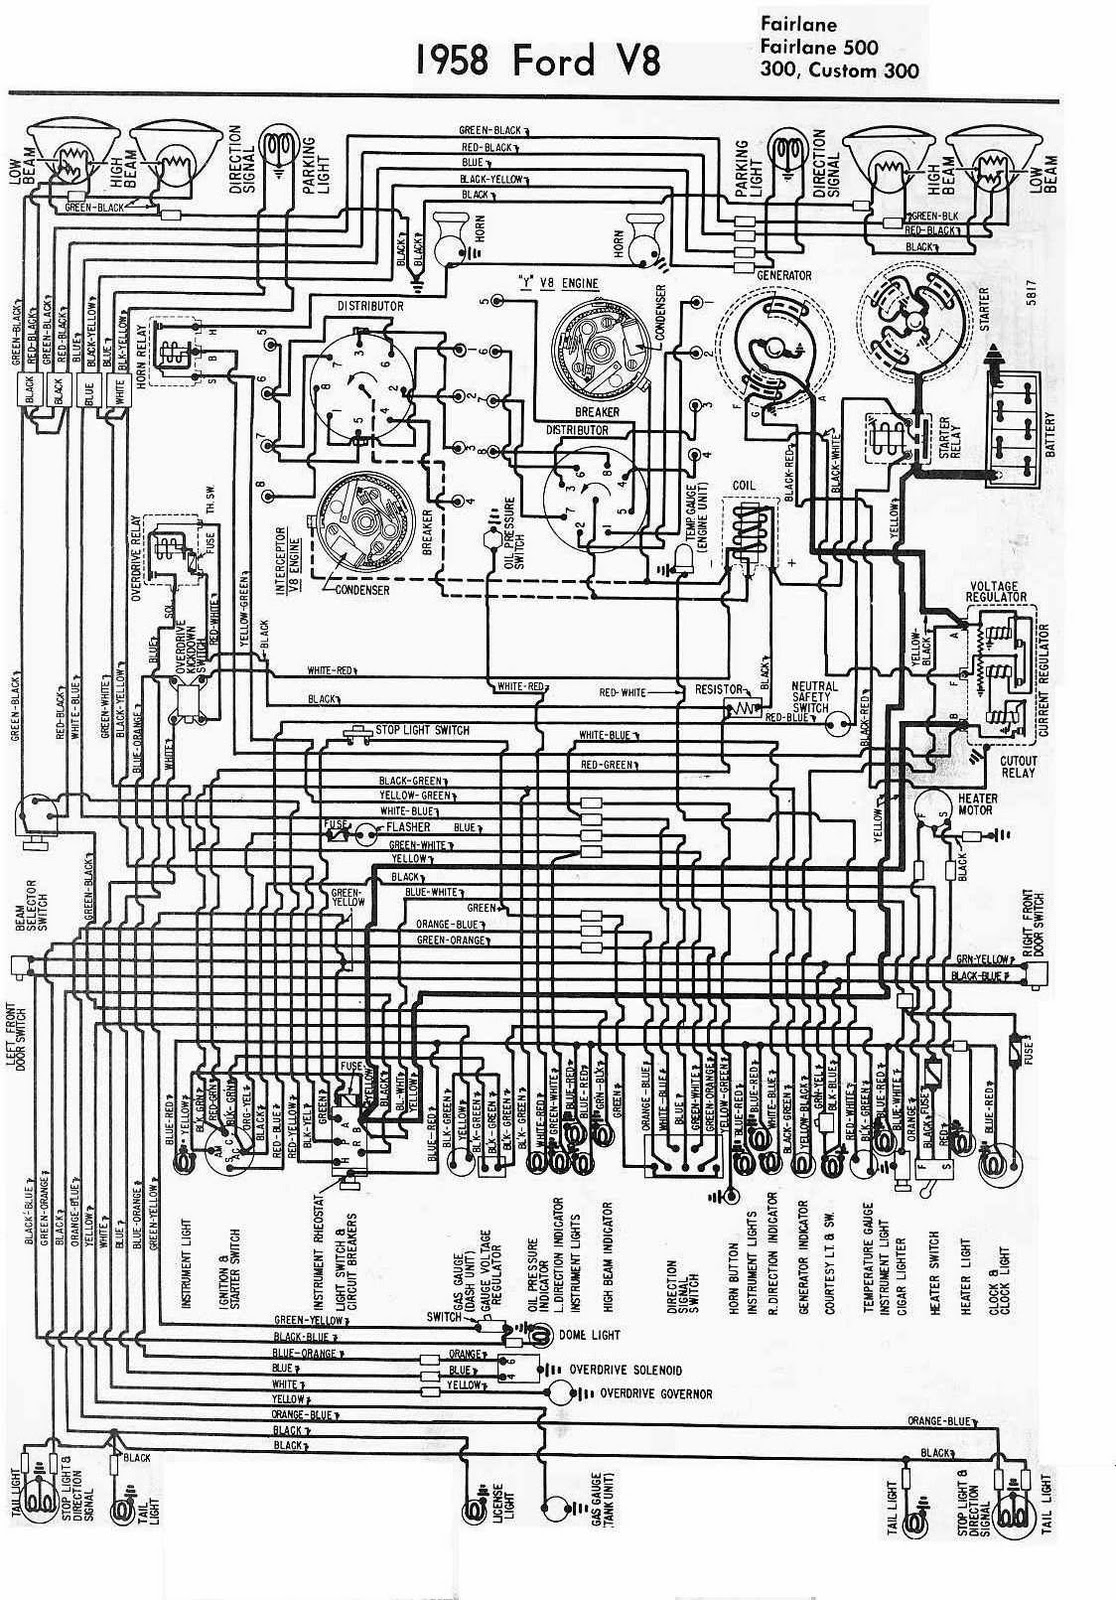 Electrical Wiring Diagram For Ford V